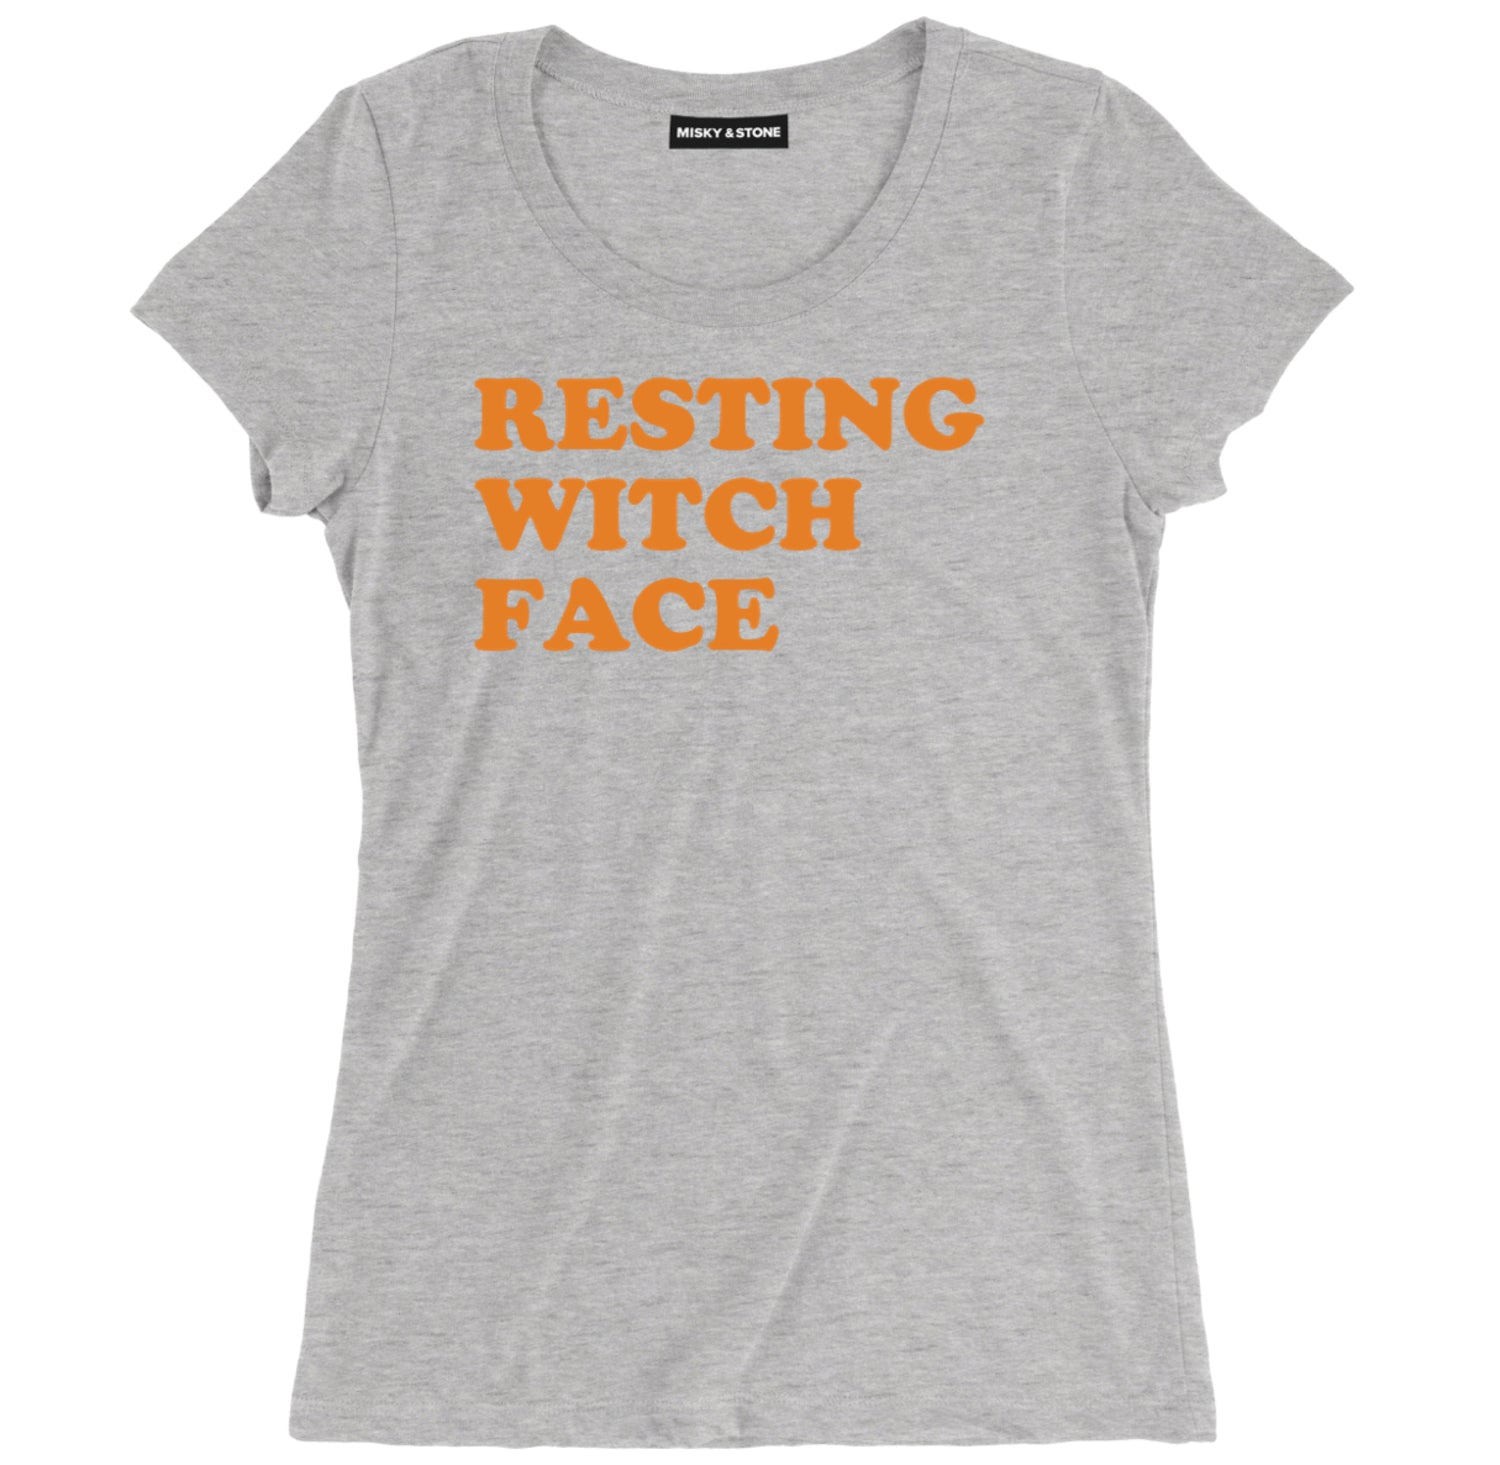 resting witch face t shirt, funny witch halloween shirts, halloween witch t shirts, halloween tee shirts, halloween tees, funny halloween shirts, cute halloween shirts, funny halloween t shirts,